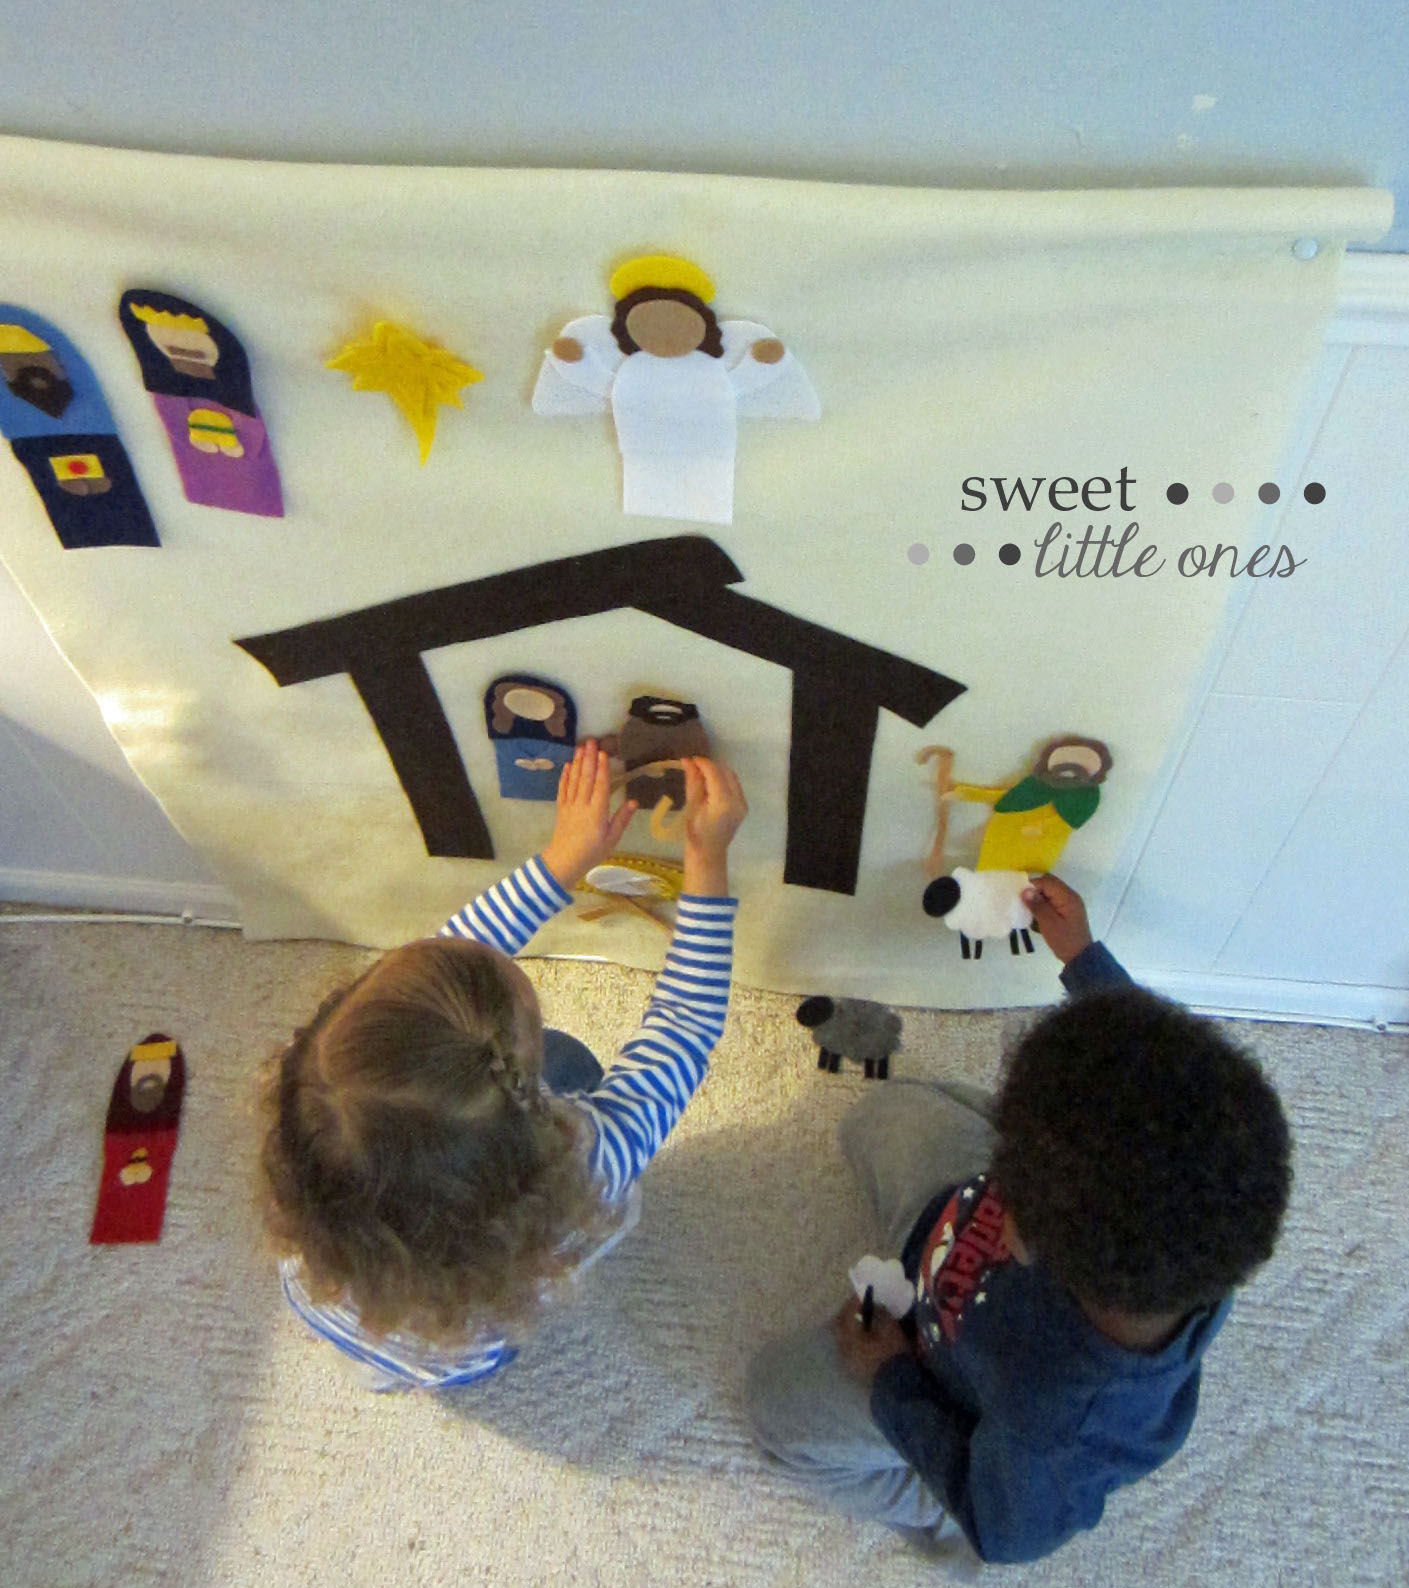 DIY Felt Nativity Scene for Kids - http://www.sweetlittleonesblog.com